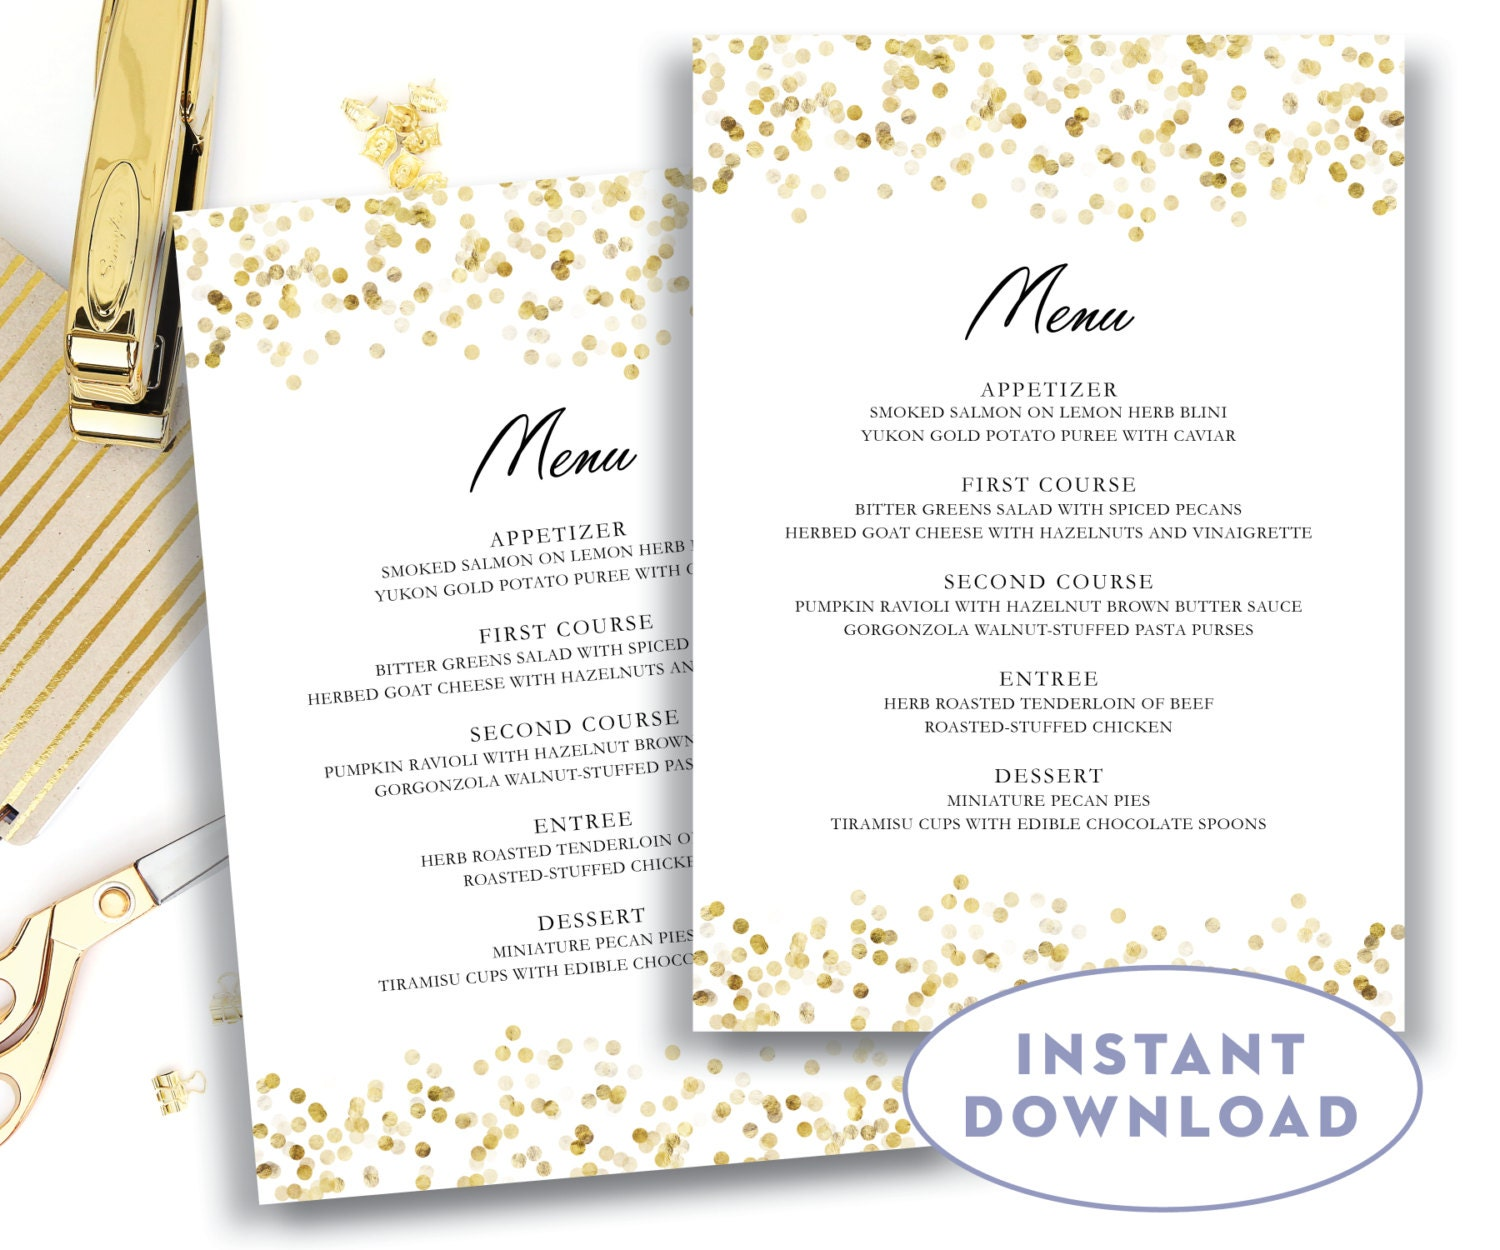 menu templates for weddings - gold wedding menu template 5x7 editable text microsoft word